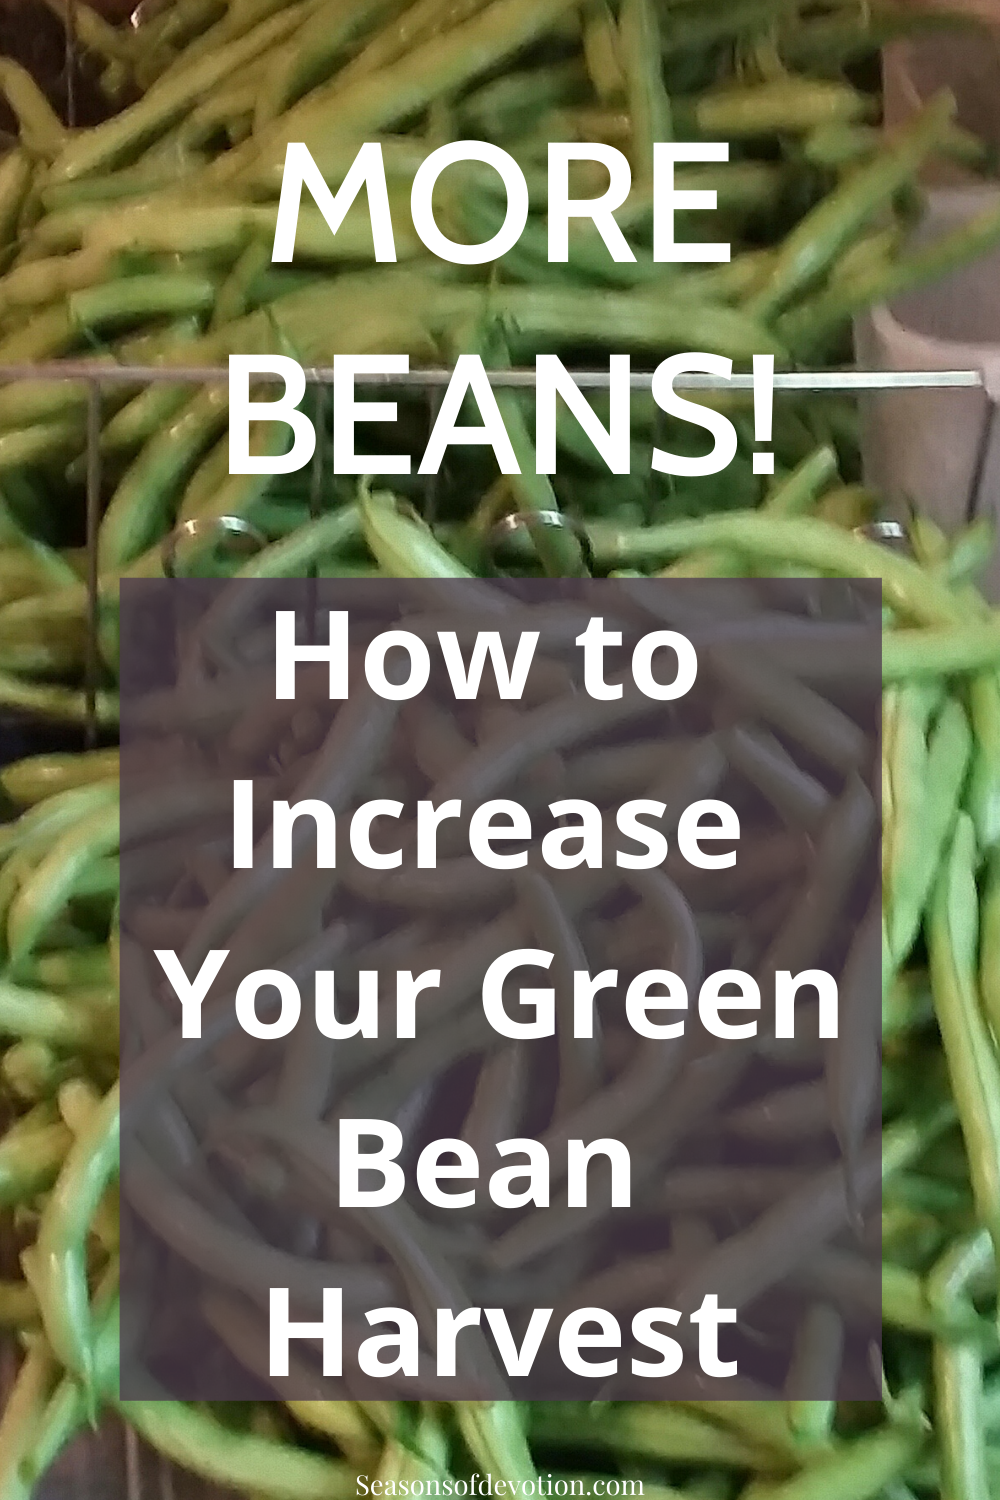 How to Increase Your Green Bean Harvest